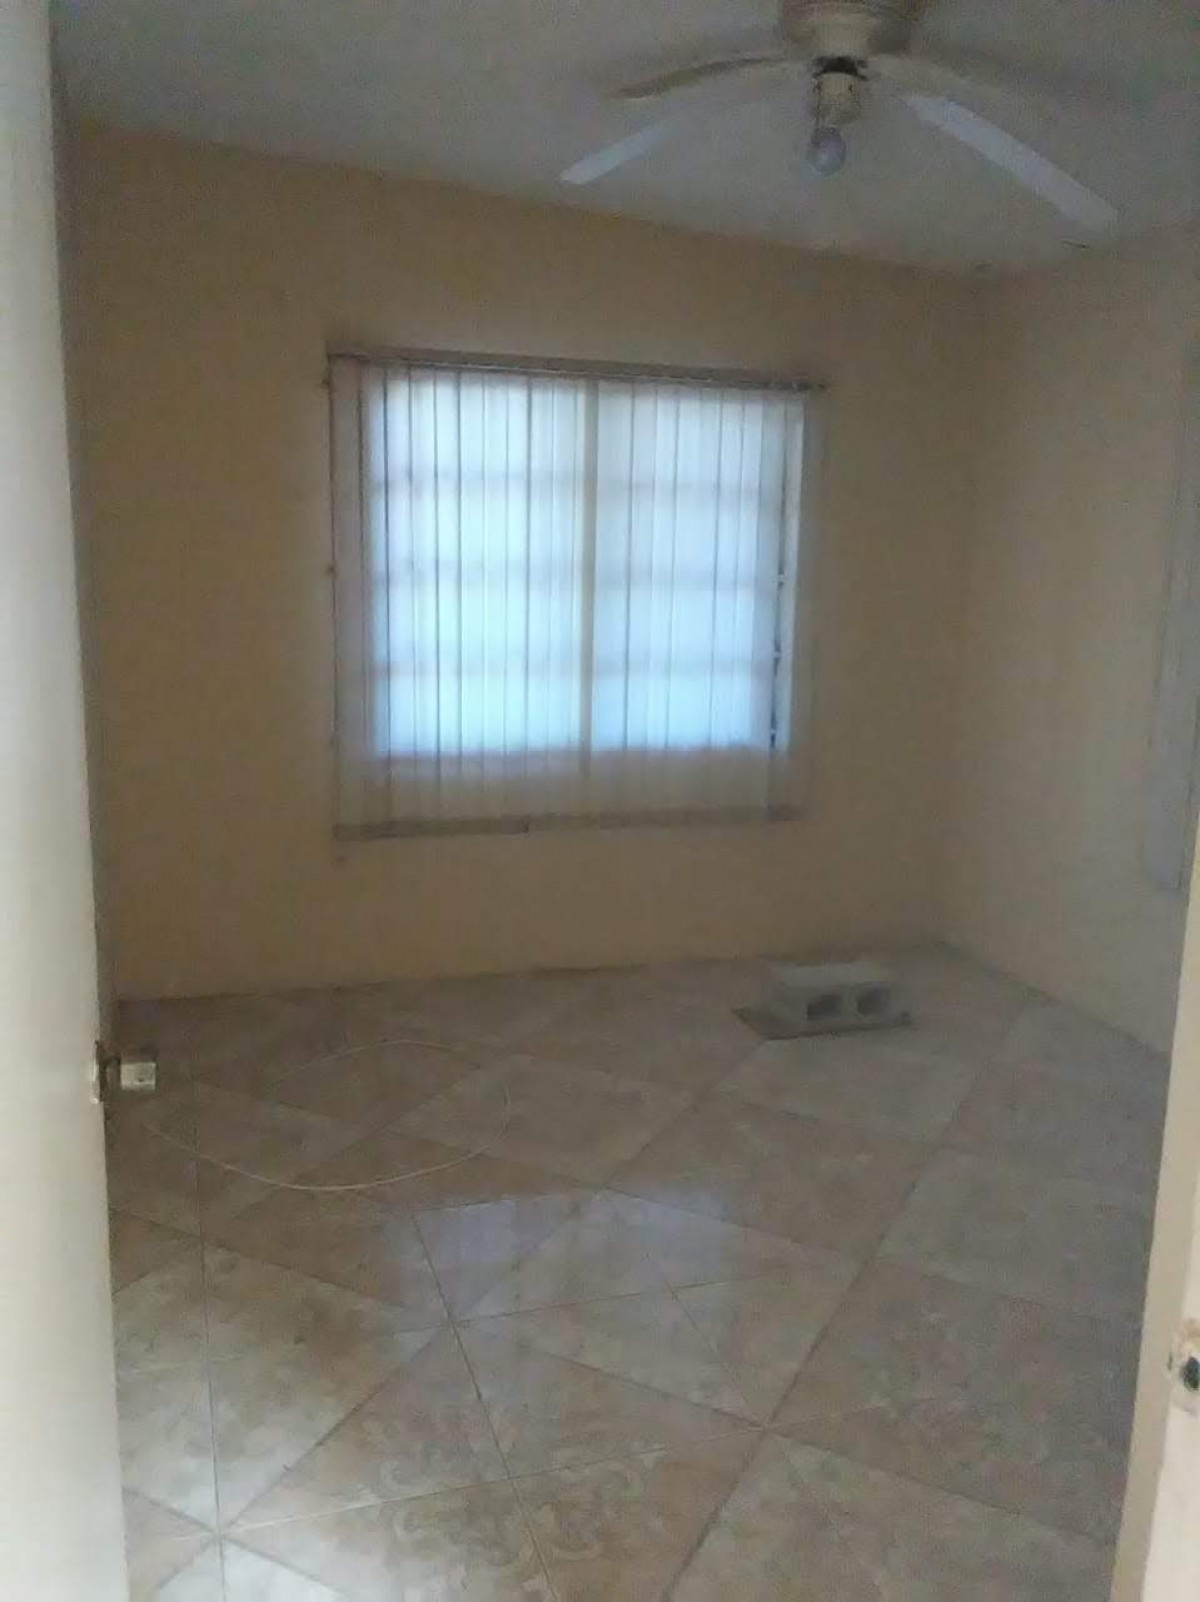 Newly Constructed 1 Bedroom For Rent In Duhaney Park Kingston St Andrew Houses